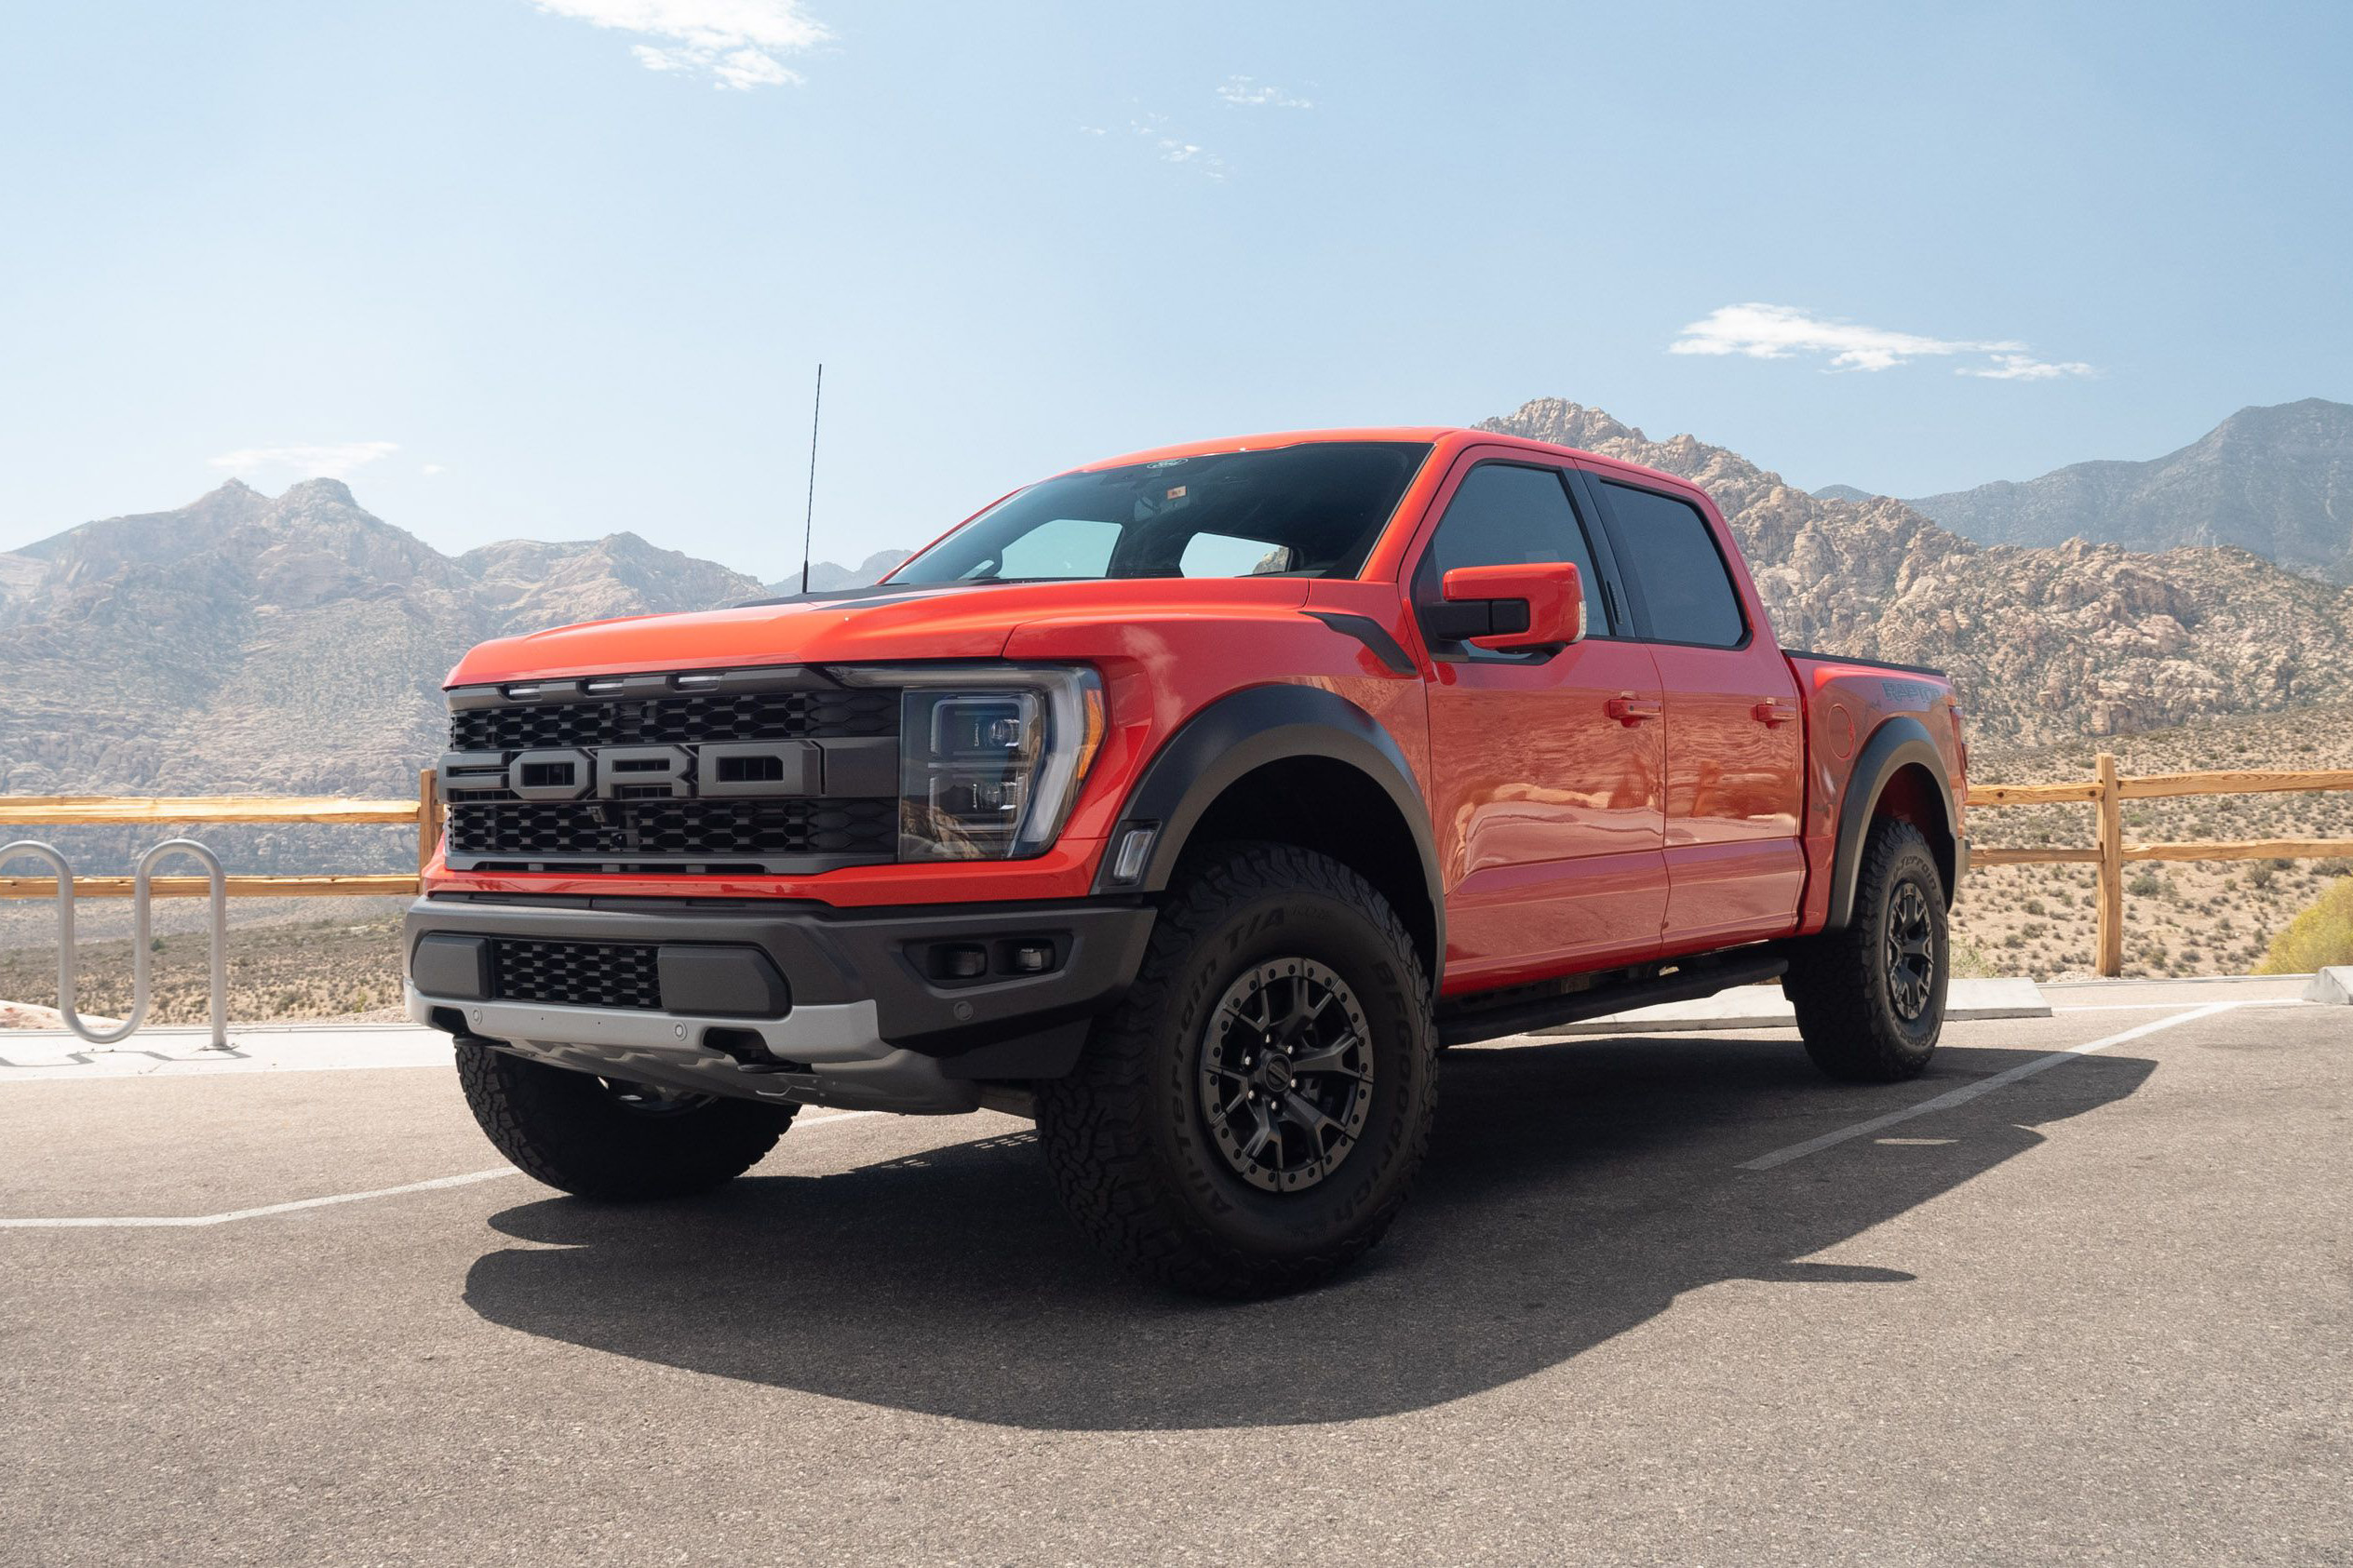 2021 Ford F-150 Raptor first drive review: American badass     - Roadshow